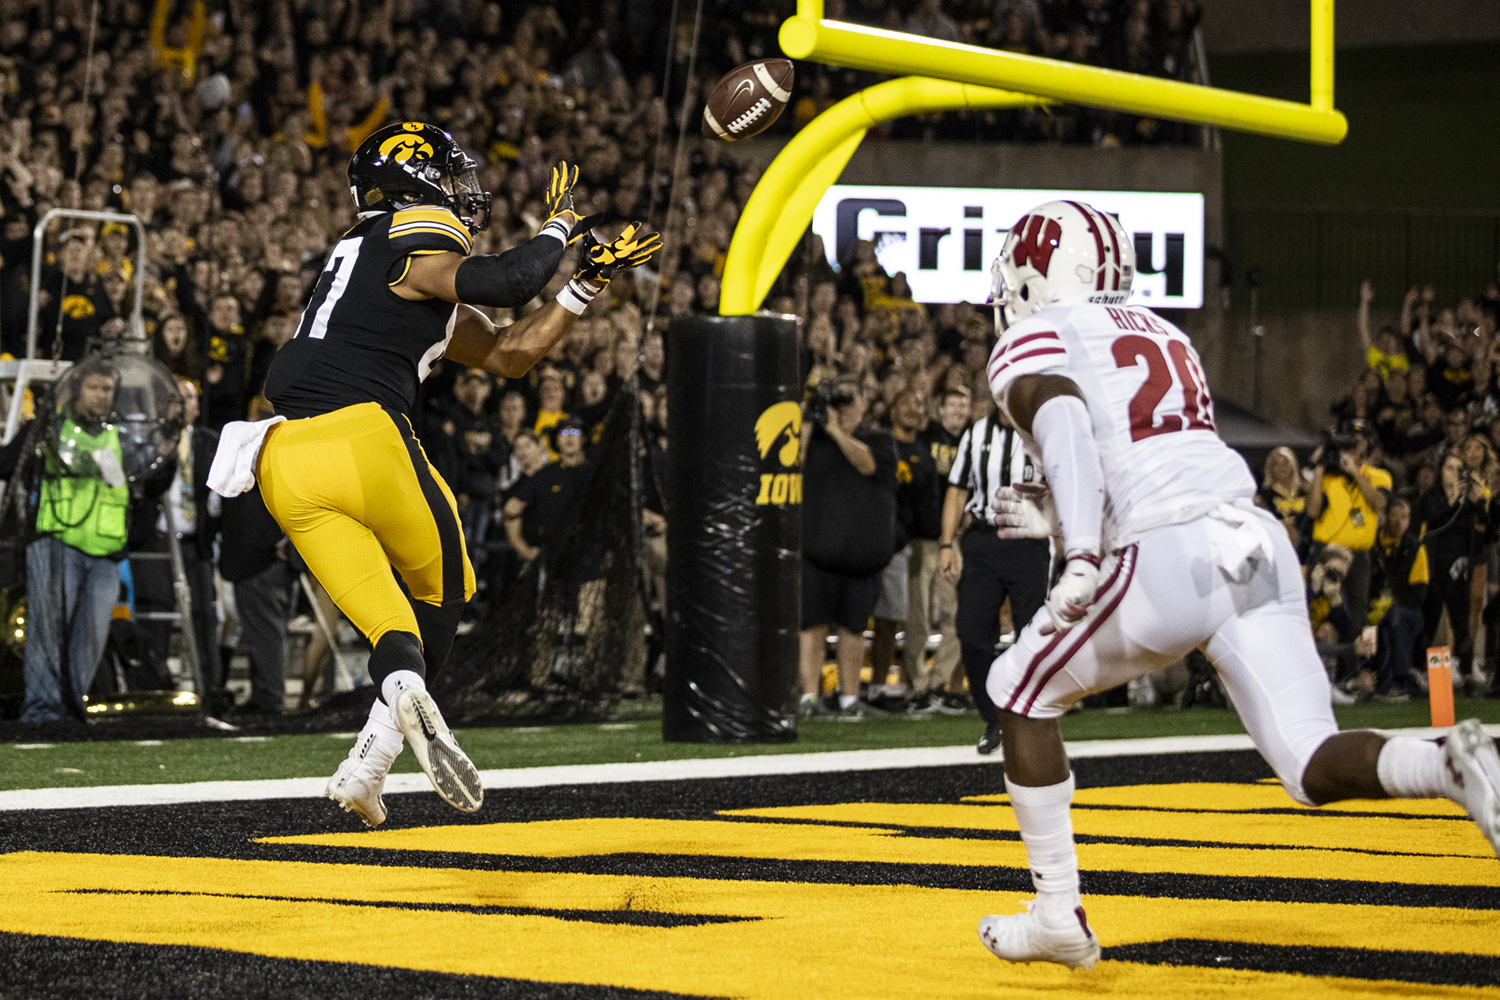 Iowa tight end Noah Fant catches a touchdown pass in the first half of Iowa's game against Wisconsin at Kinnick Stadium on Saturday, Sep 22, 2018. The score is tied 7-7 at the half.